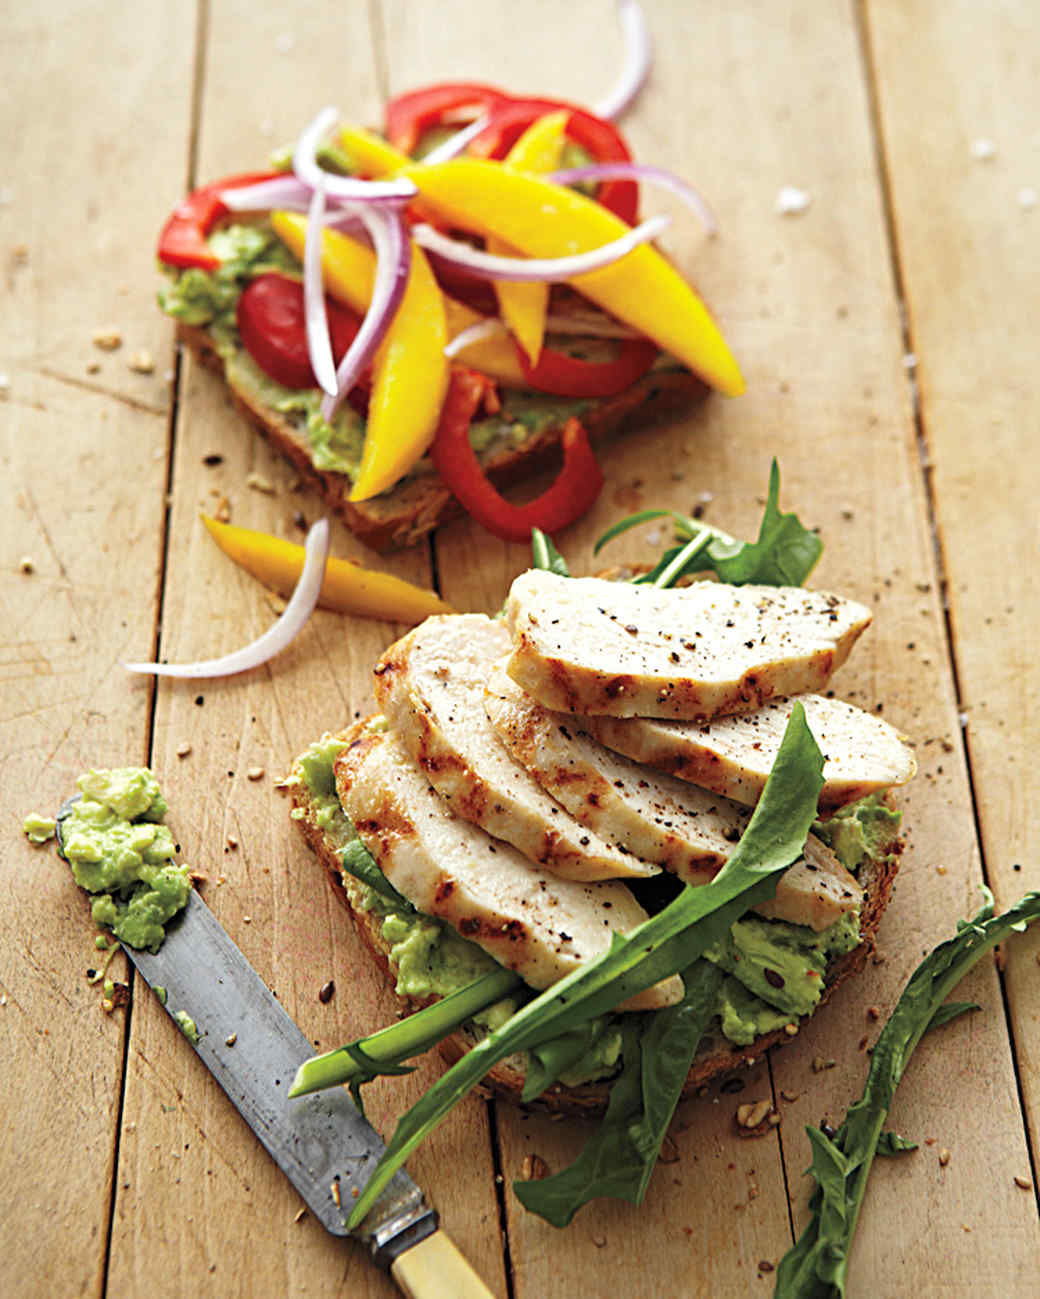 20 fuss-free chicken sandwich recipes for lunch or dinner | martha